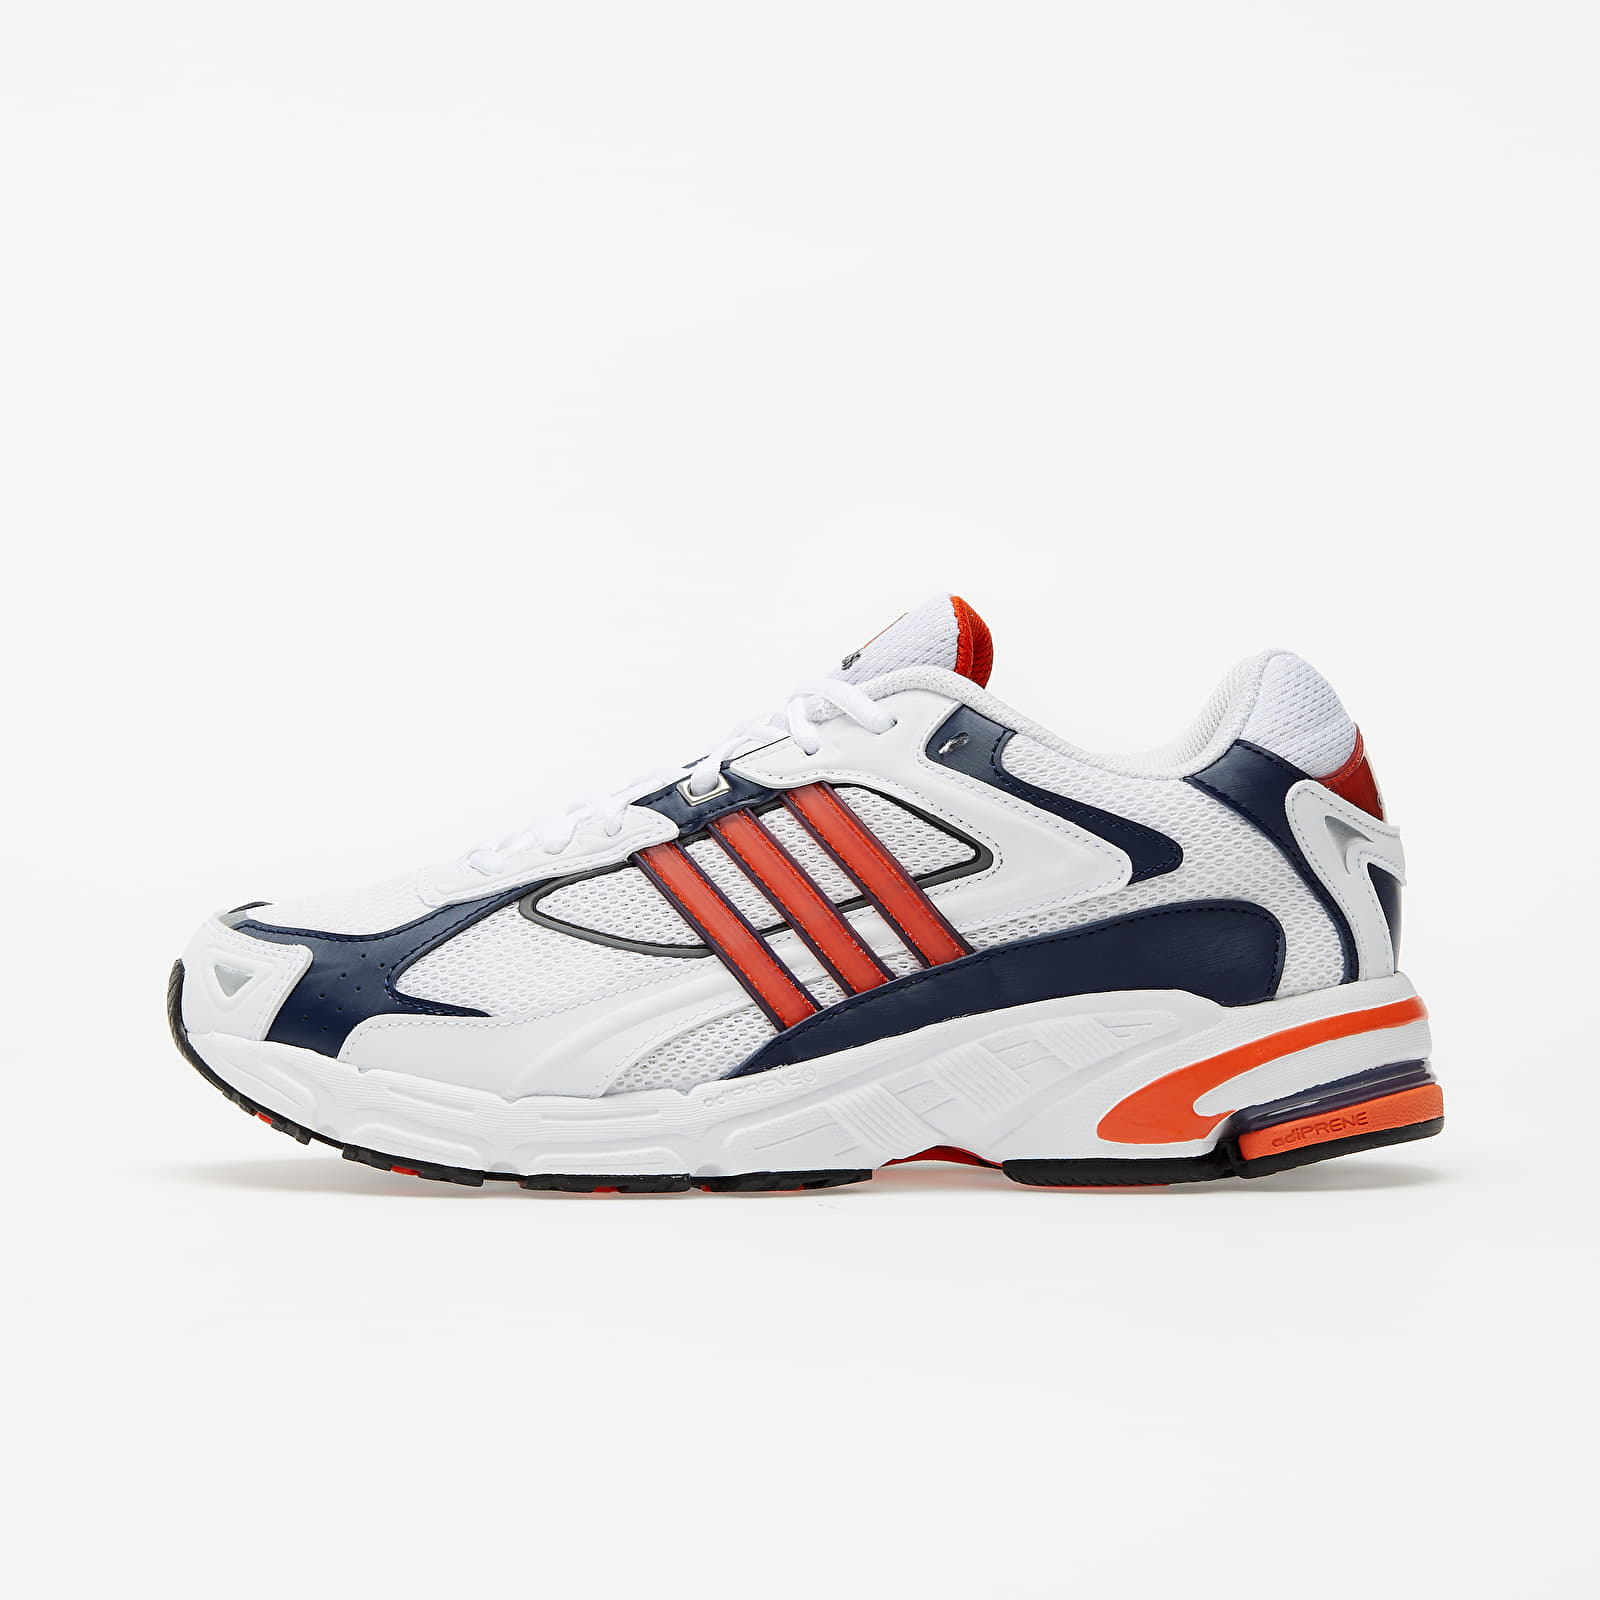 Chaussures et baskets homme adidas Response CL Ftwr White/ Collegiate Orange/ Collegiate Navy